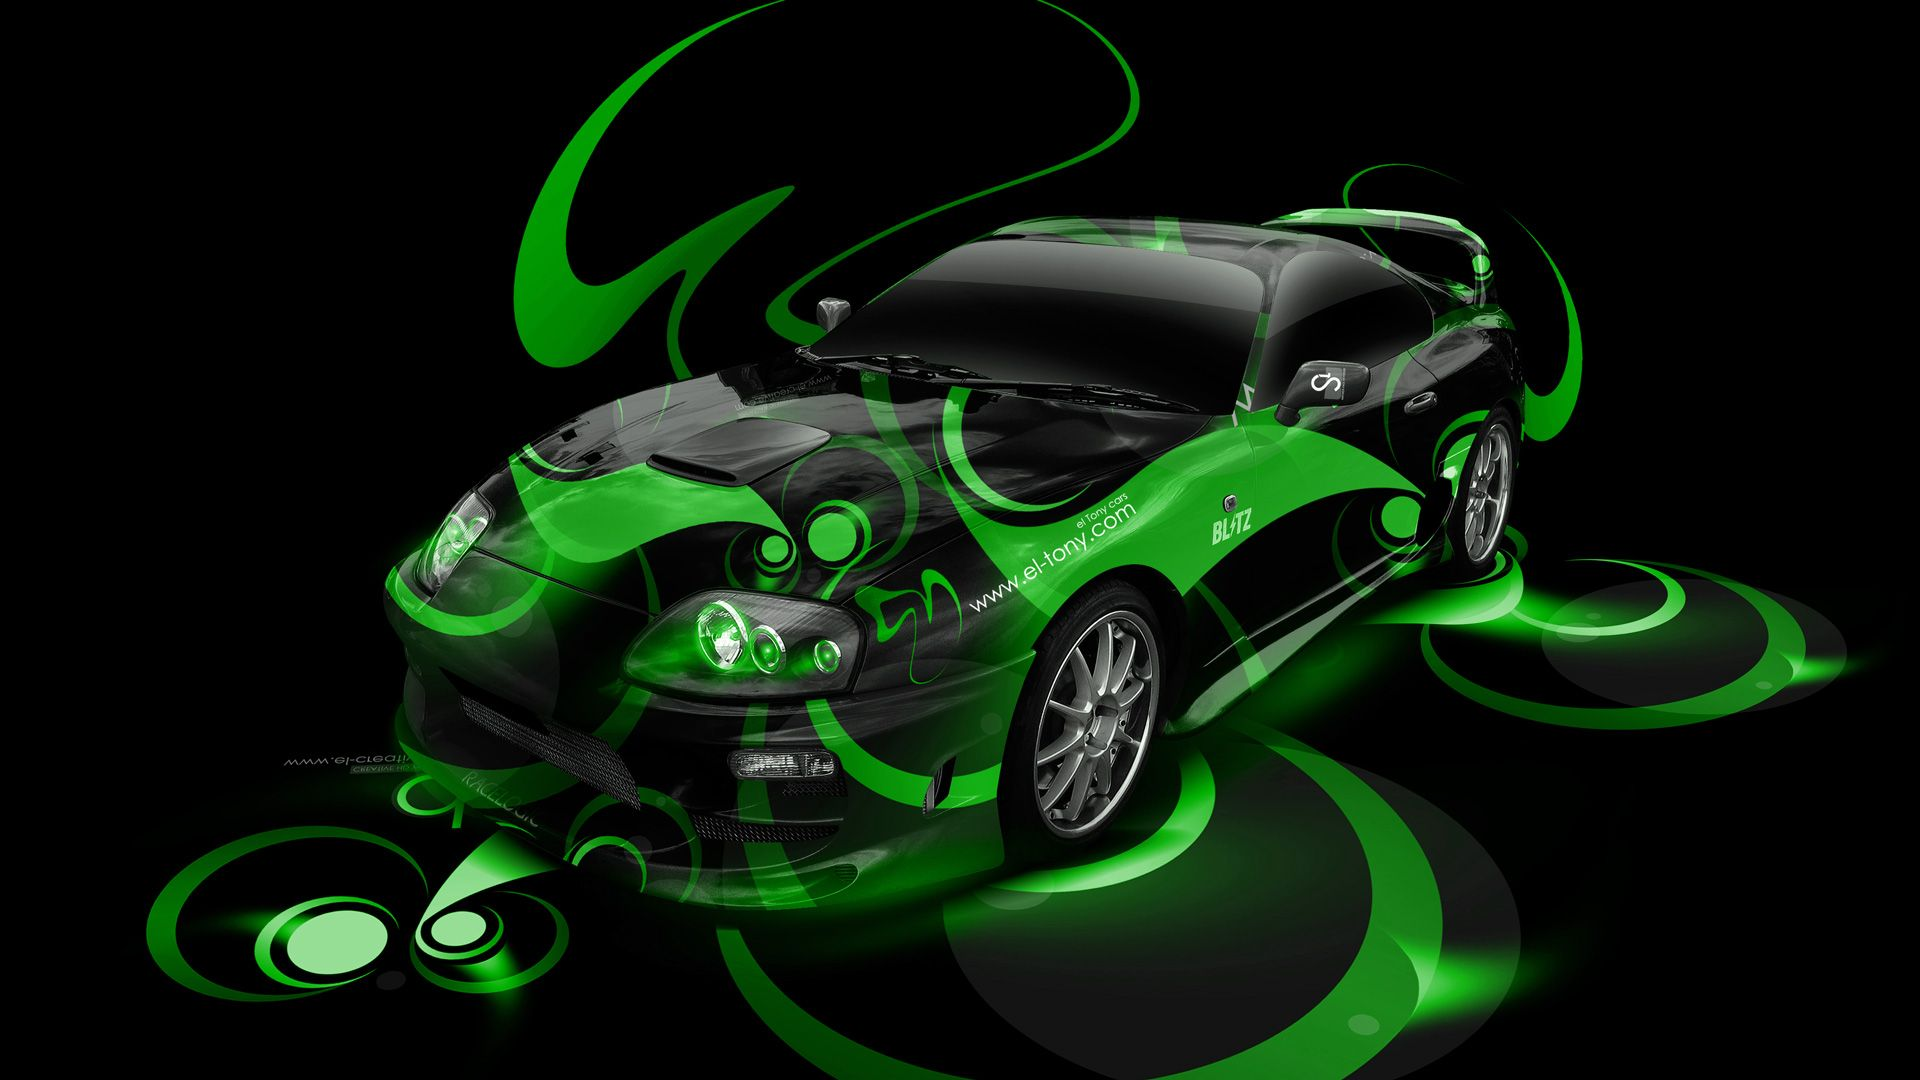 Toyota Supra JDM Super Abstract Car 2014 Green